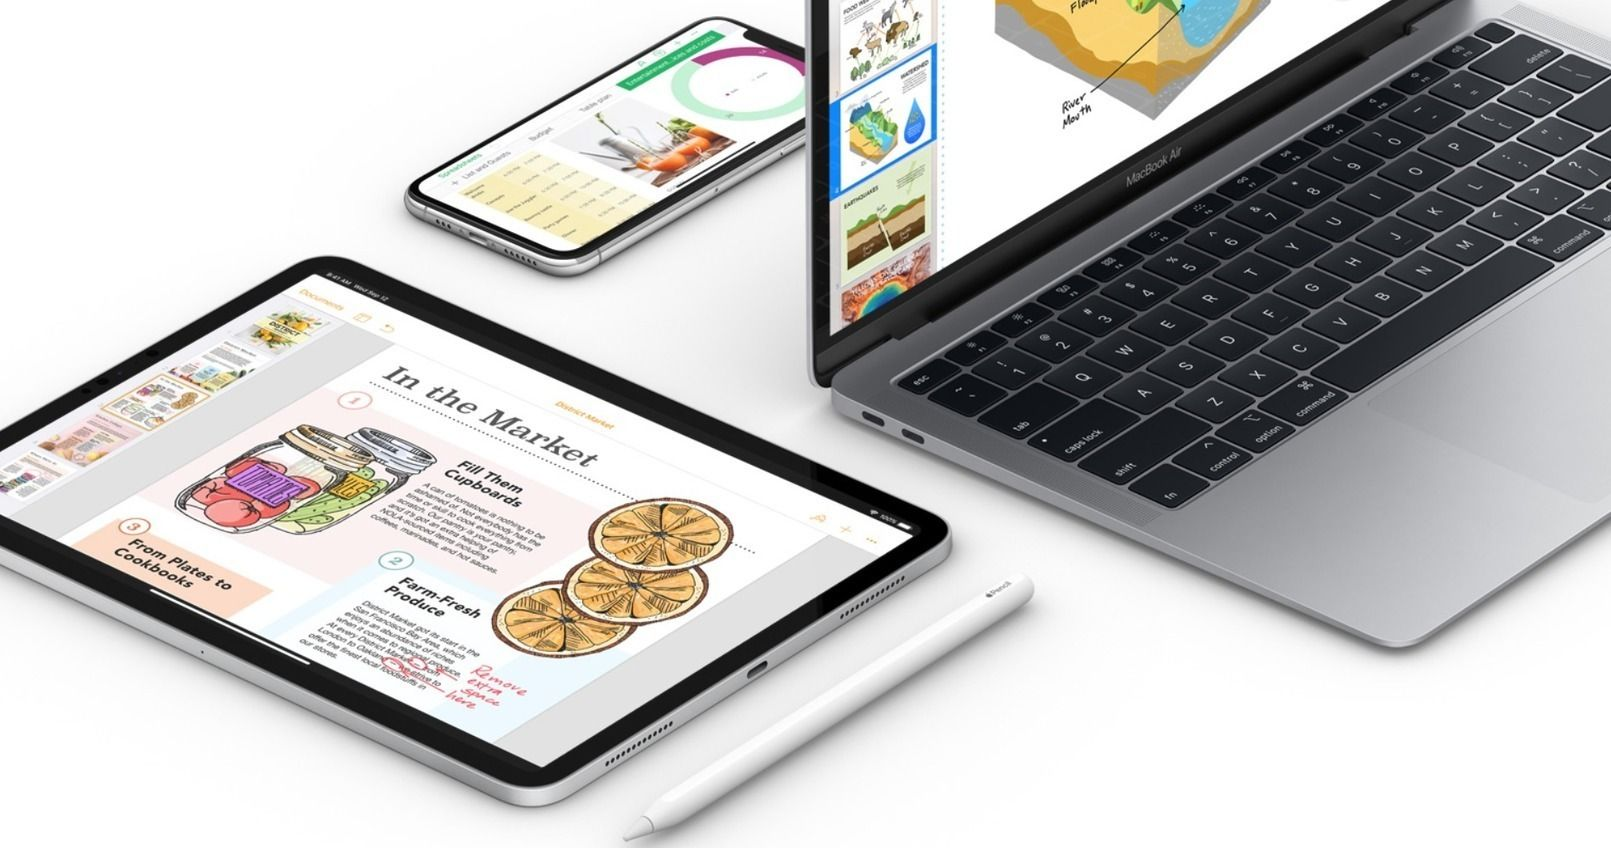 Apple's Pages, Numbers and Keynote Apps All Receive